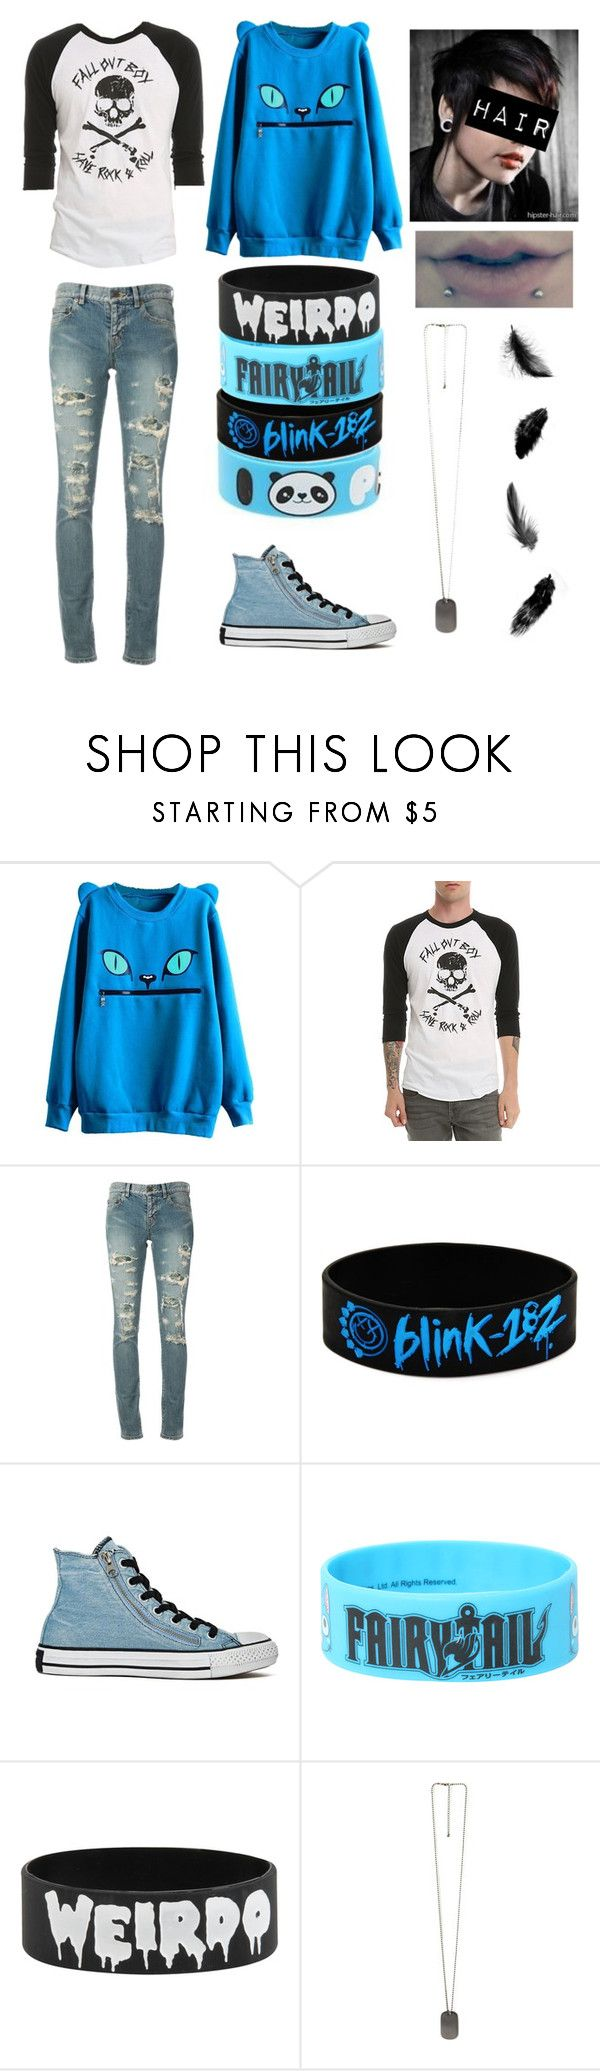 """Tomboy<3"" by koyukifullbuster ❤ liked on Polyvore featuring Hot Topic, Yves Saint Laurent, Blink, Converse and 21 Men"